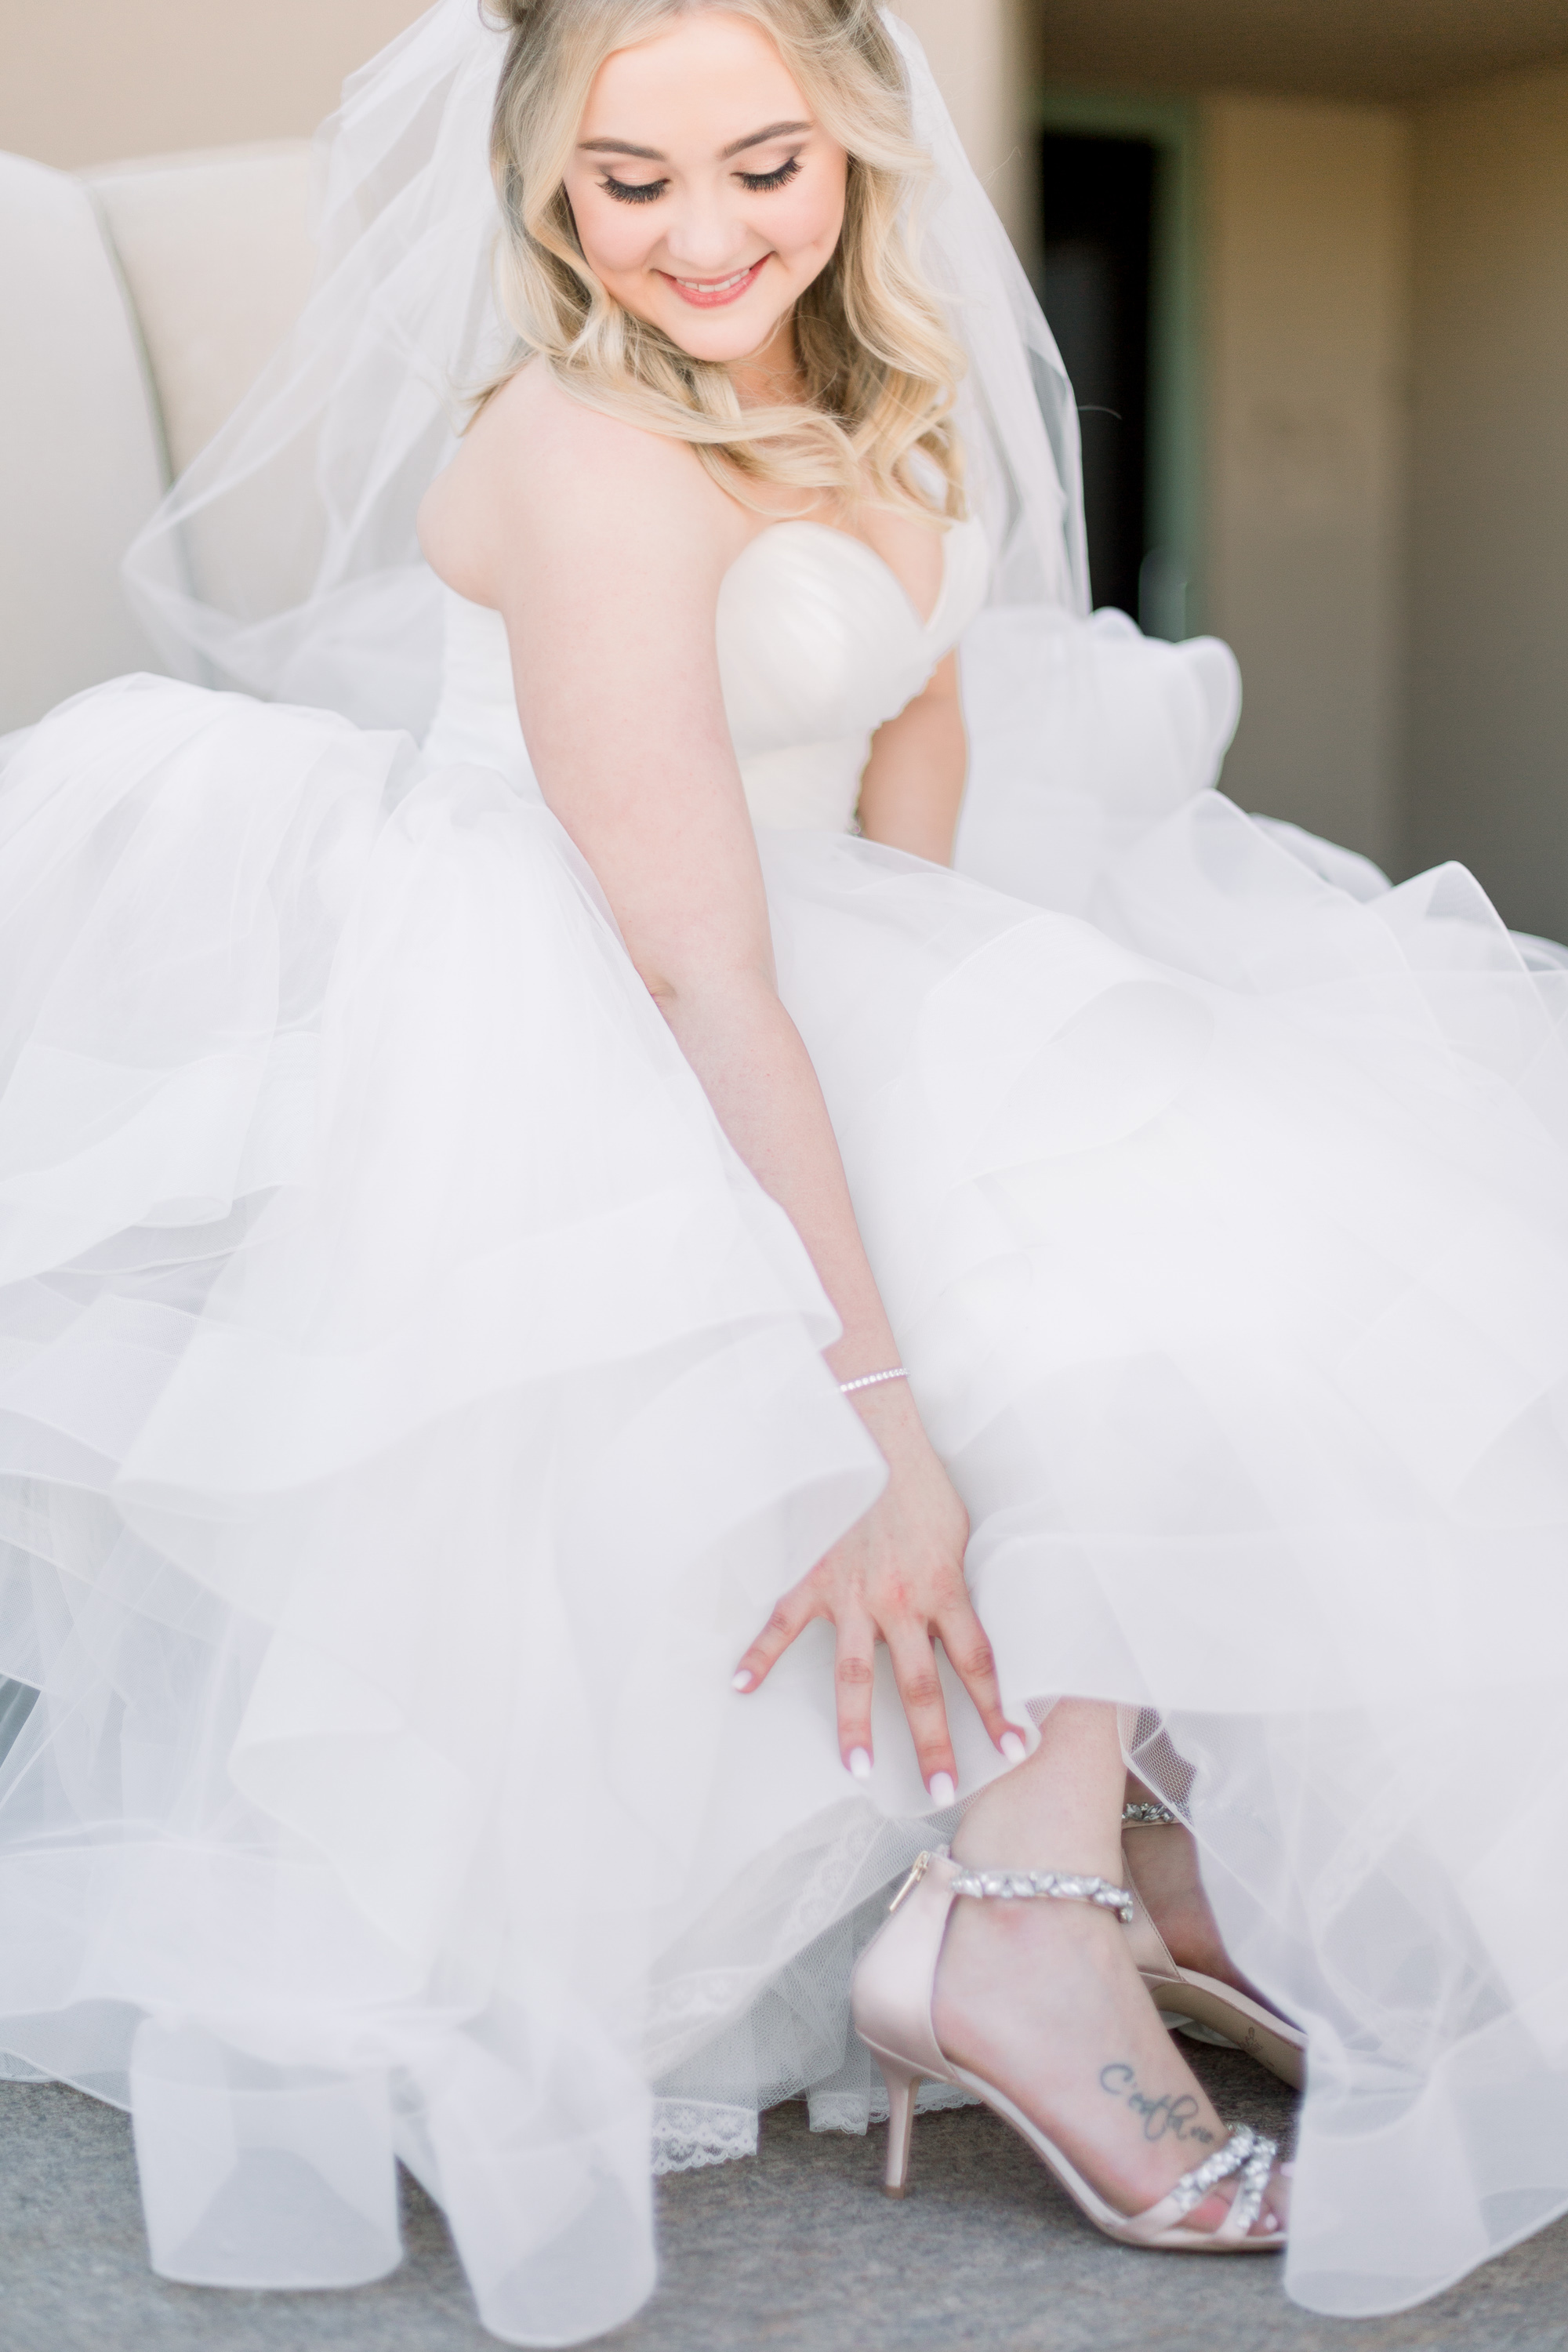 2019.03.23 Sarah & Peter Wedding  115.JPG